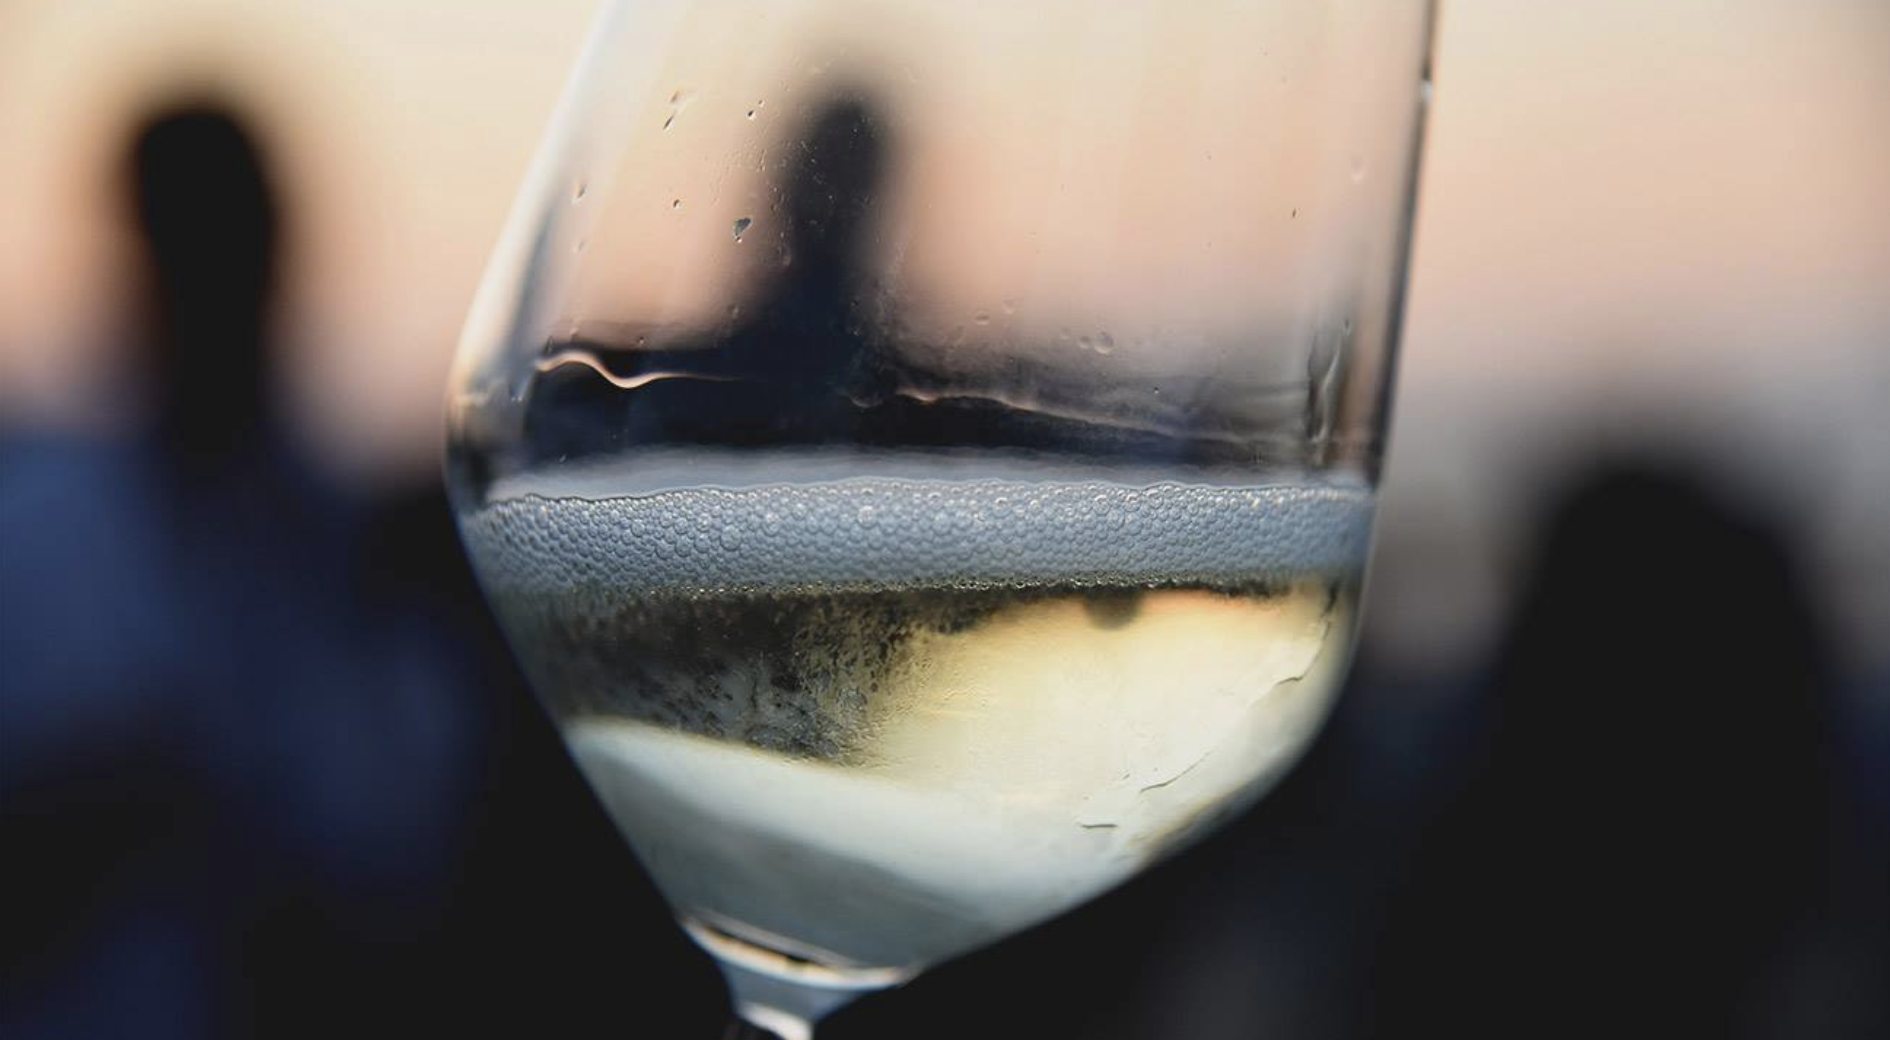 Tramonto DiVino 2019: wines and foods of Emilia-Romagna for tasting